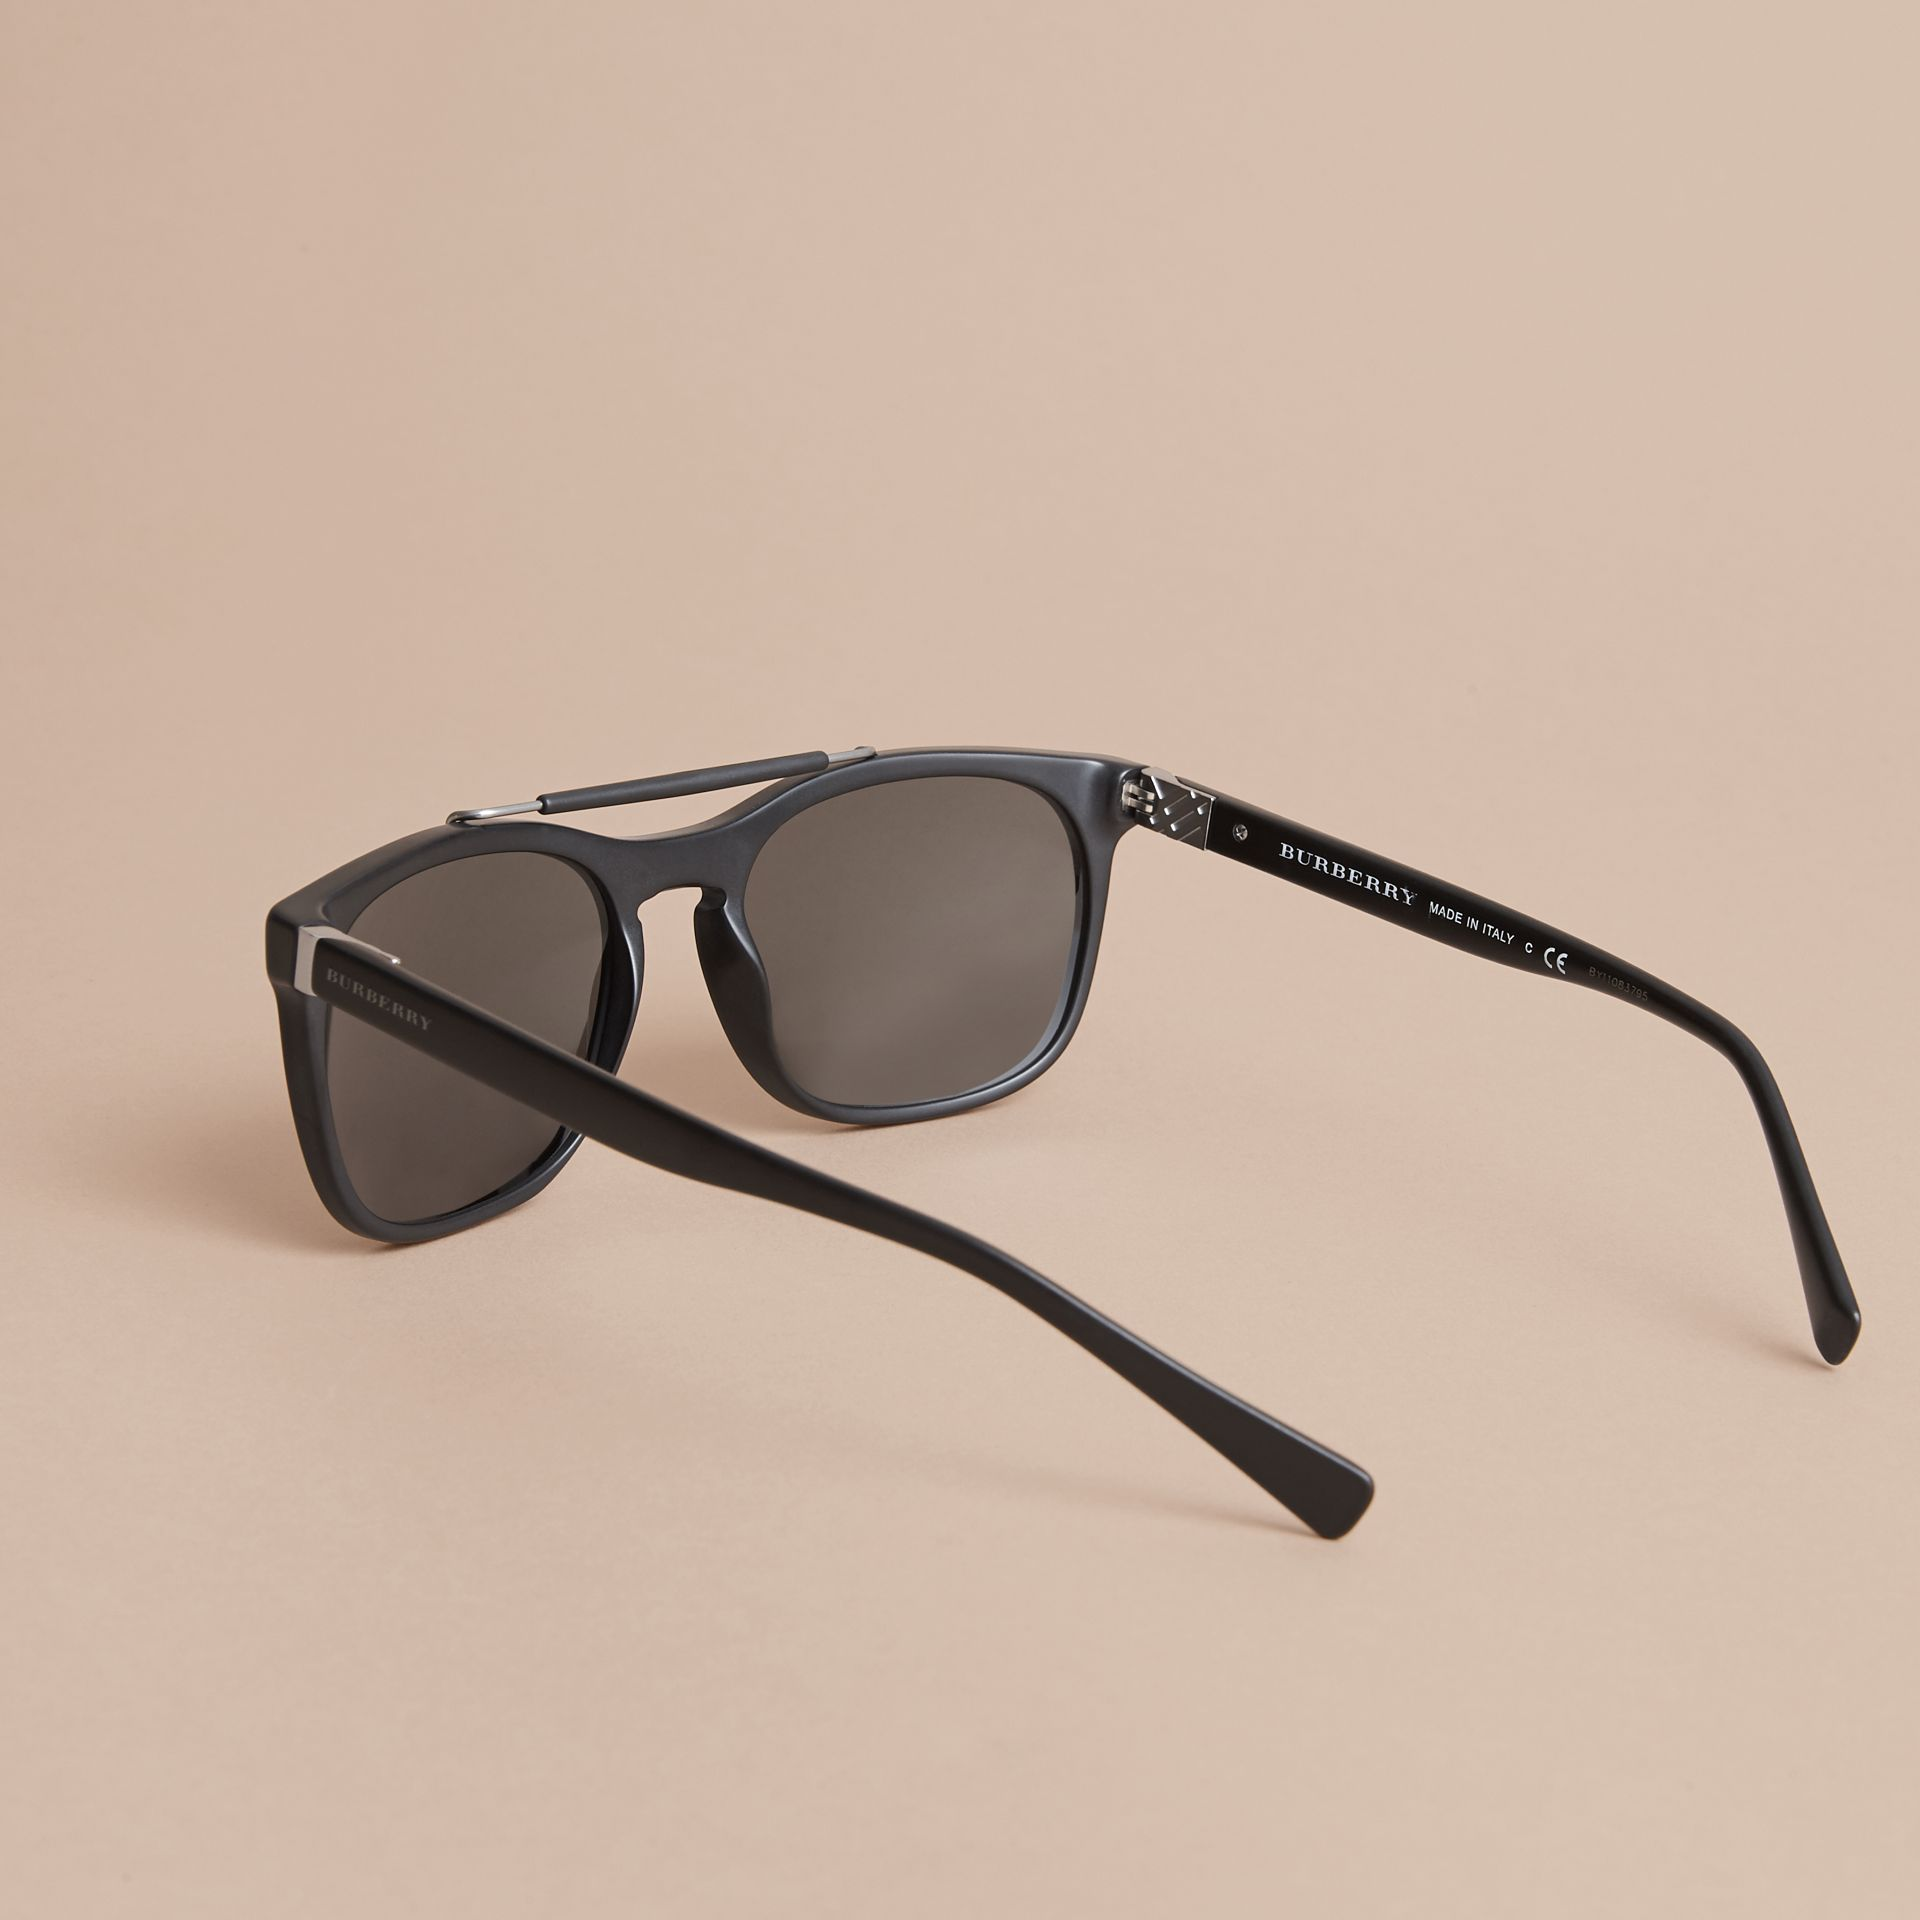 Top Bar Square Frame Sunglasses in Black - Men | Burberry United Kingdom - gallery image 4